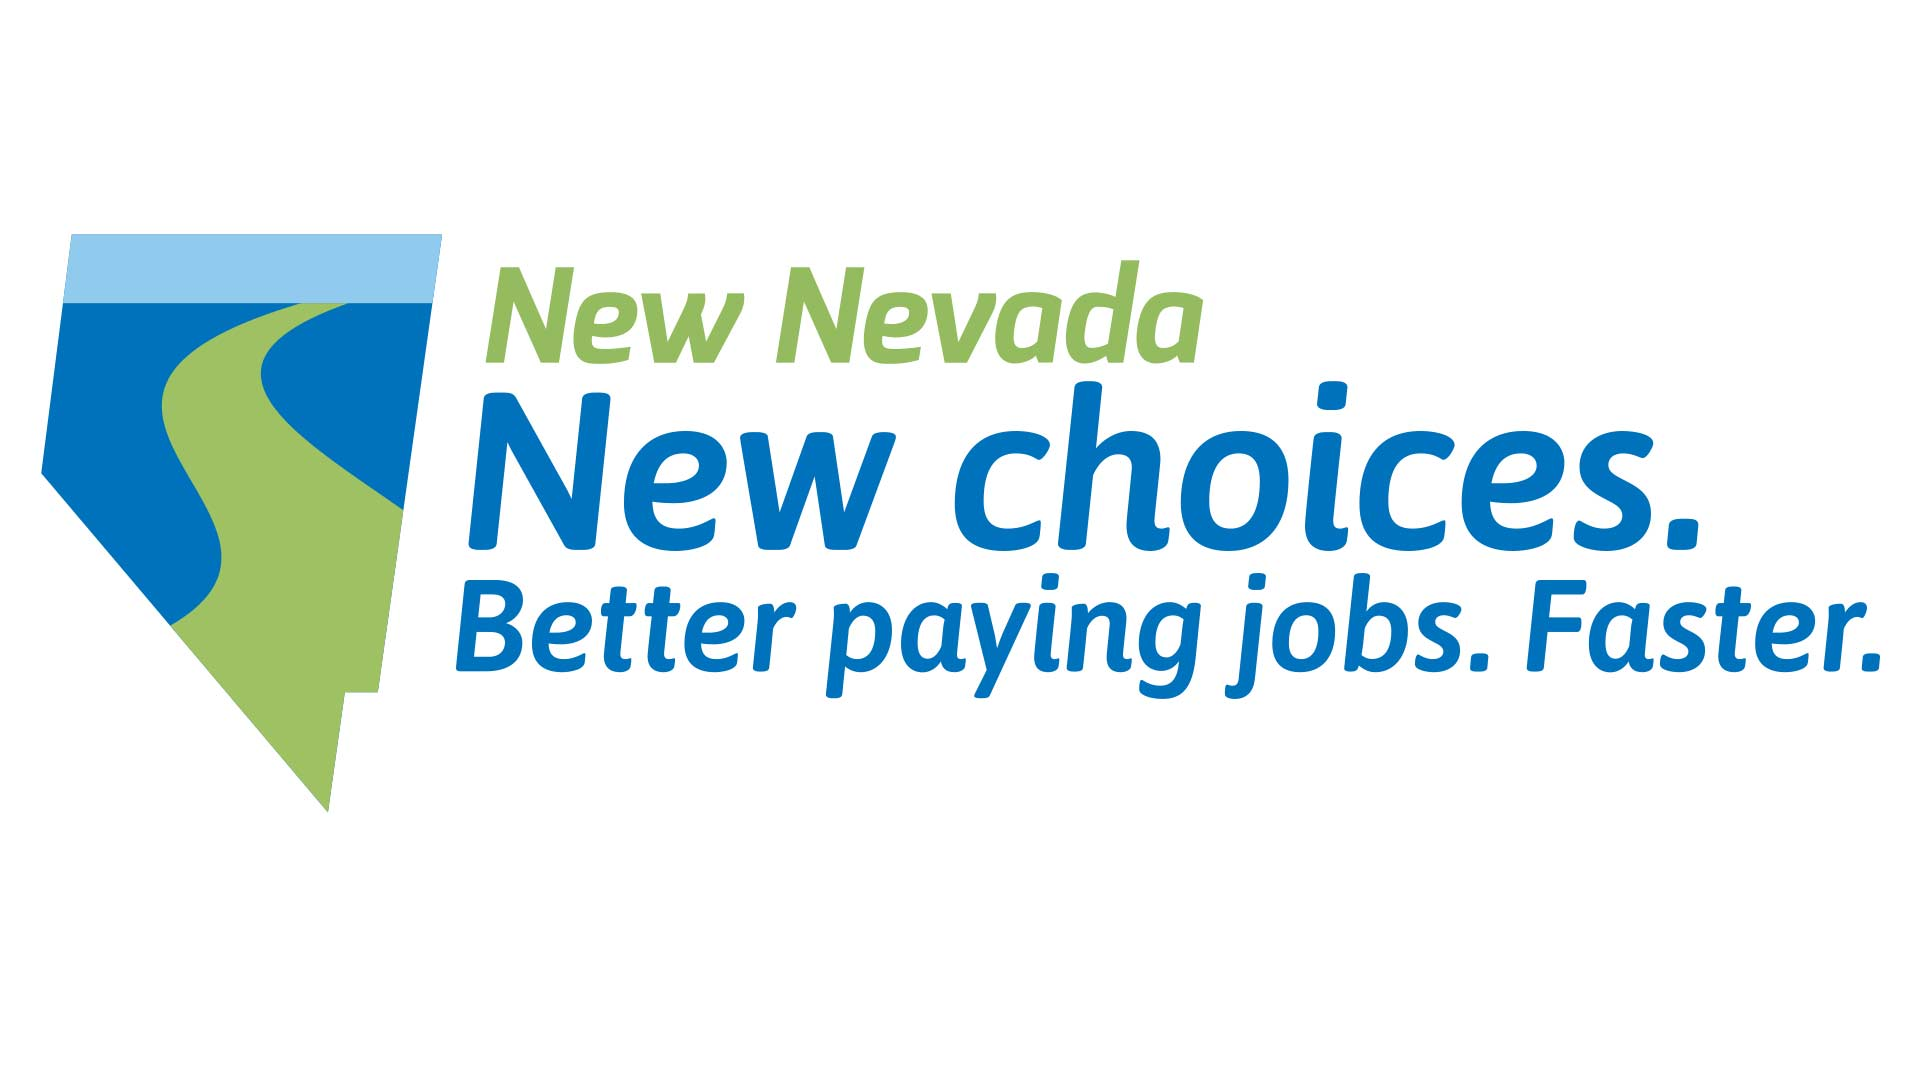 New Nevada. New Choices. Better Paying Jobs. Faster.